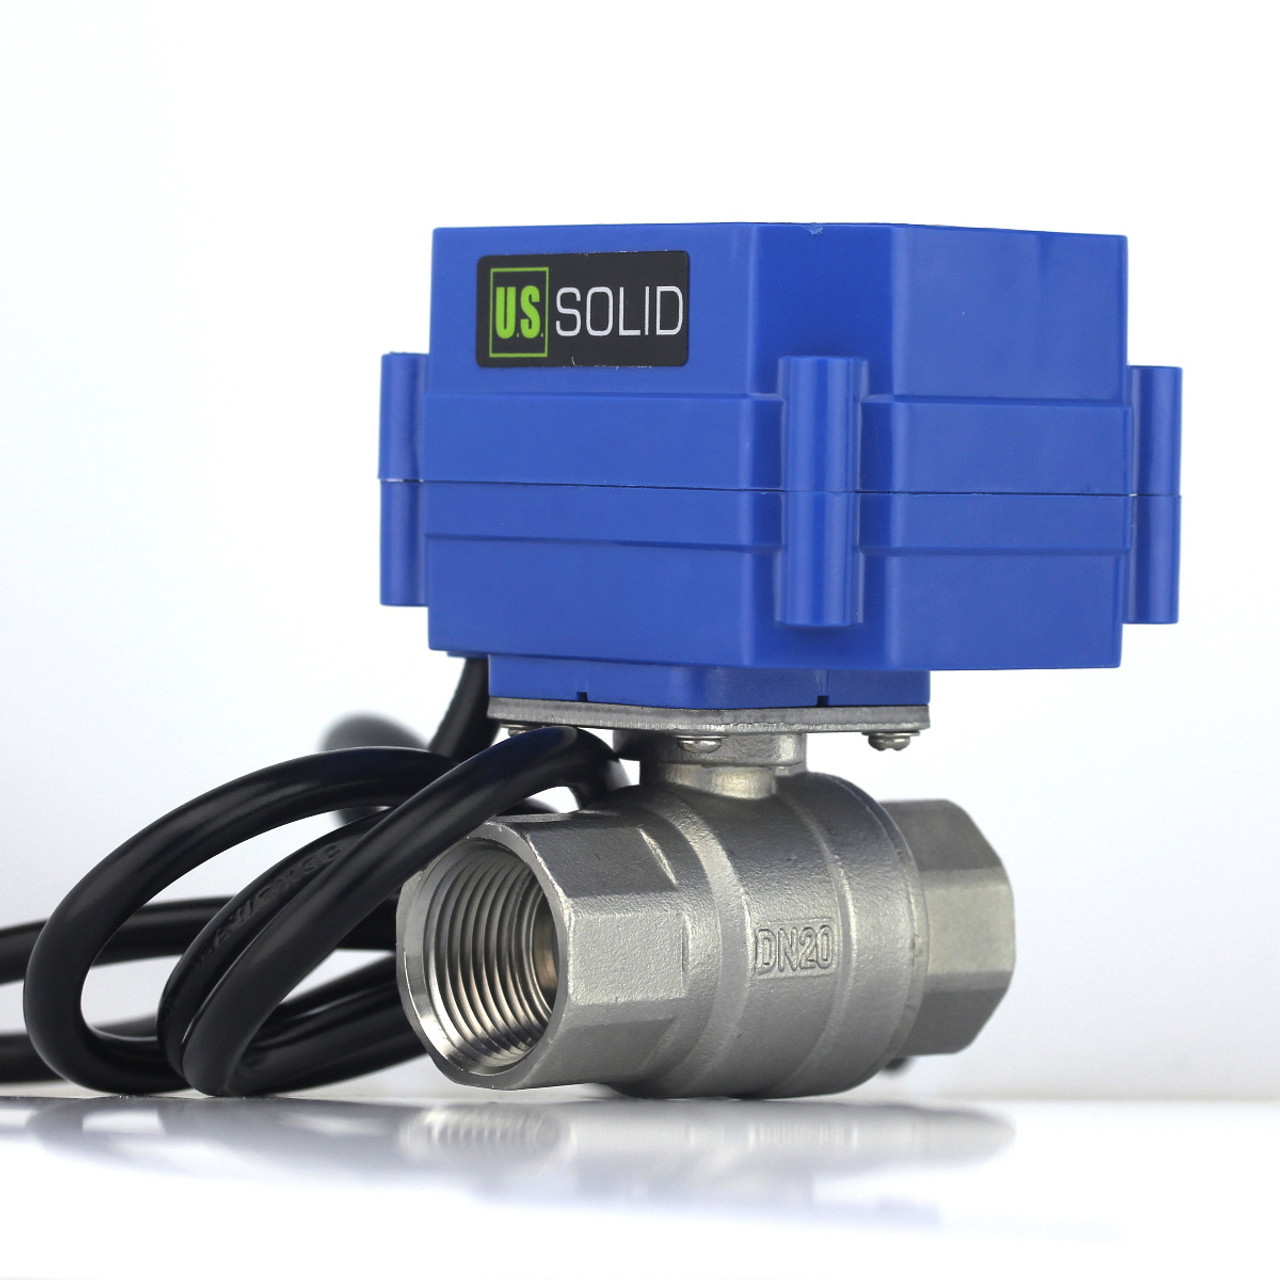 "USSOLID Motorized Ball Valve- 1/2"" Stainless Steel Electrical Ball Valve with Full Port, 110 V AC, 2 Wire Auto Return"